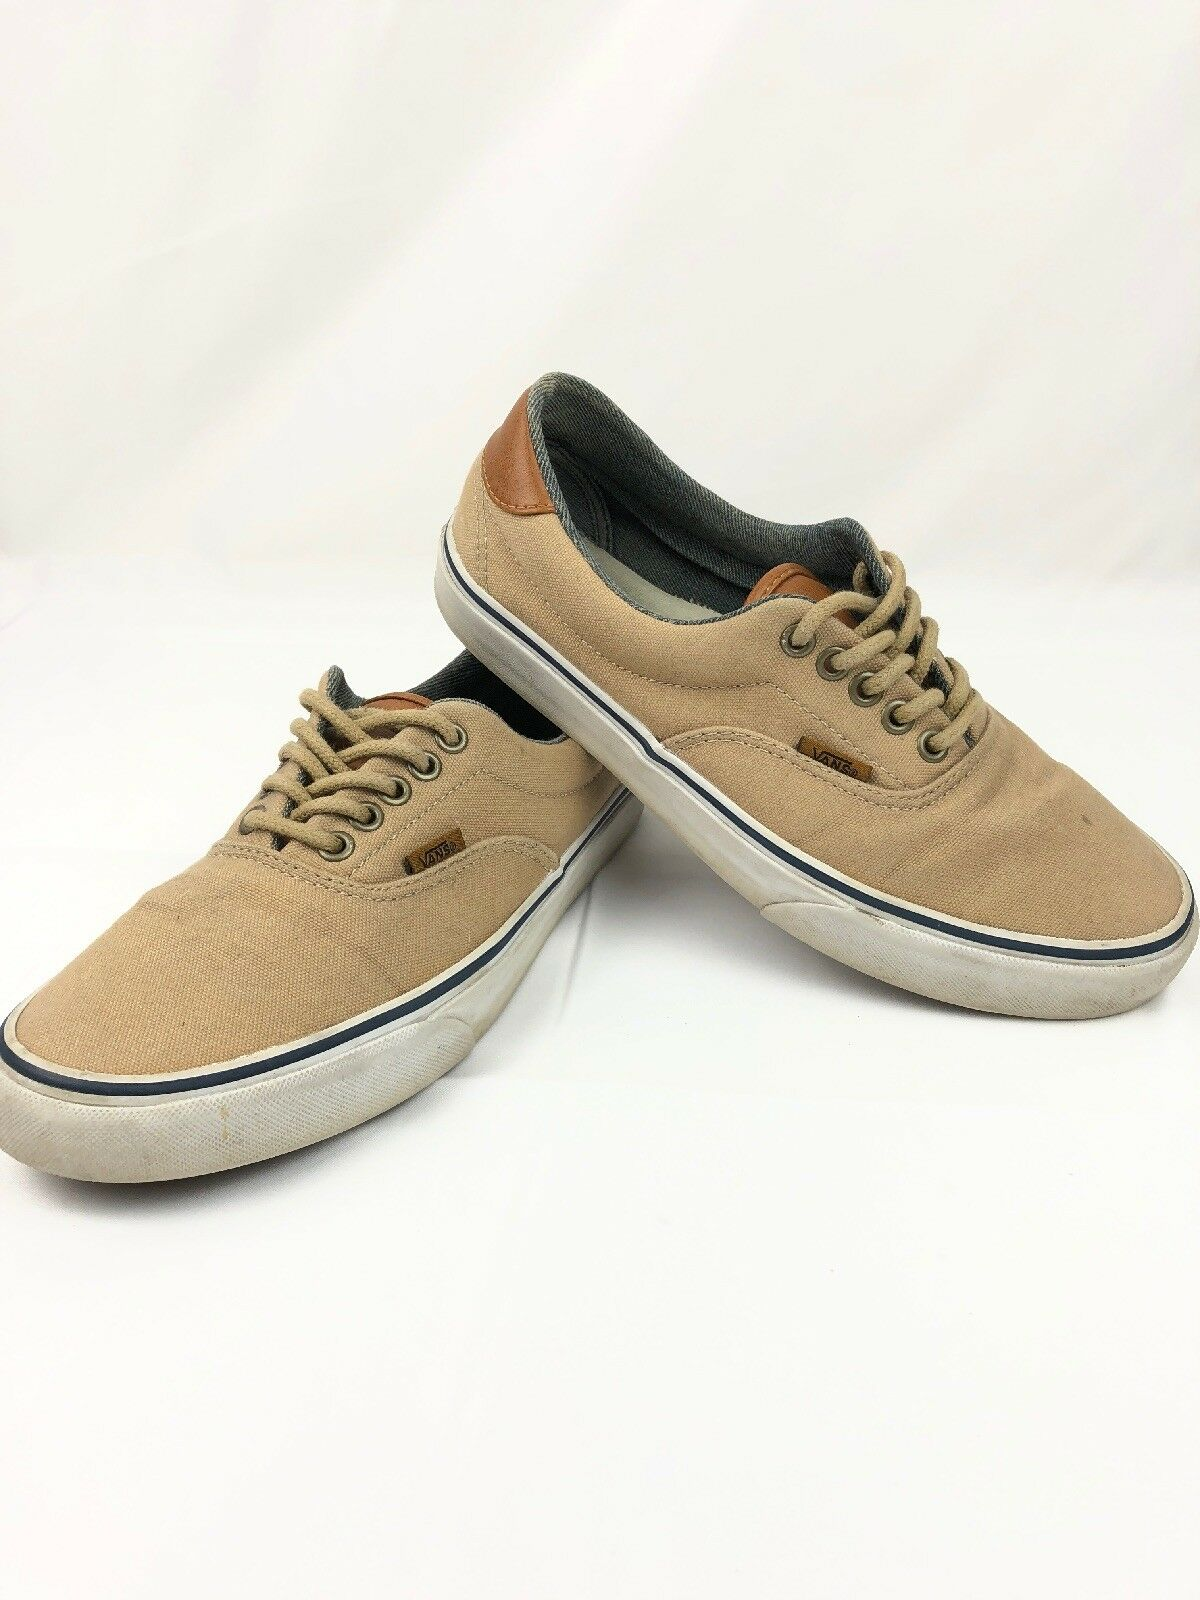 Vans Off The Wall Unisex Tan Beige Leather Canvas Tennis shoes Mens 7.5  W 9